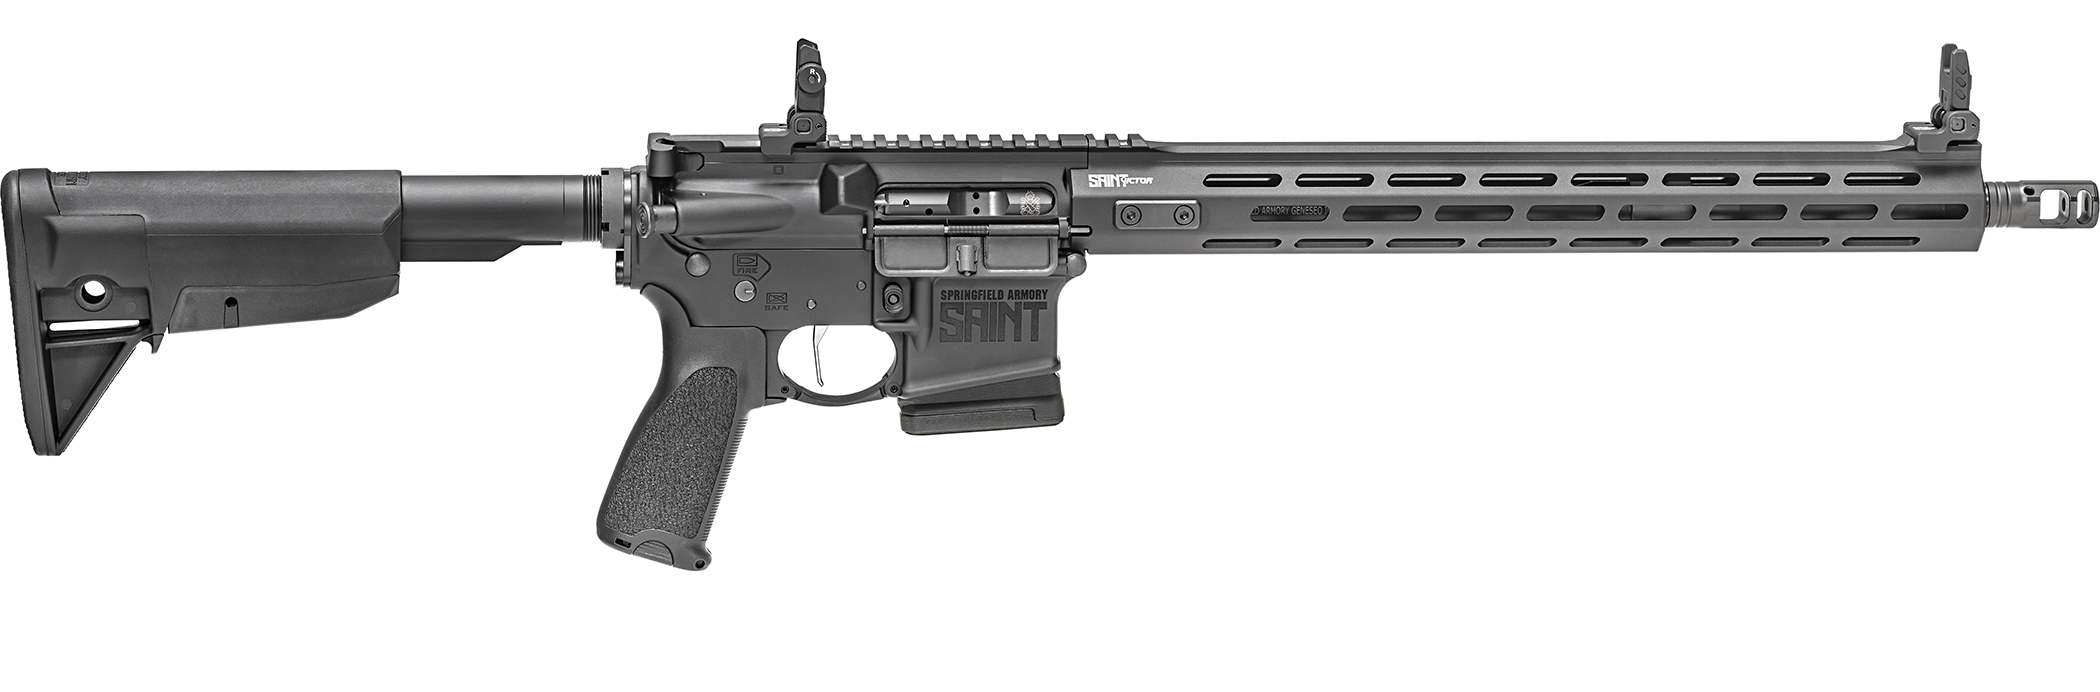 Springfield Armory Saint Victor 223 Rem | 5.56 NATO